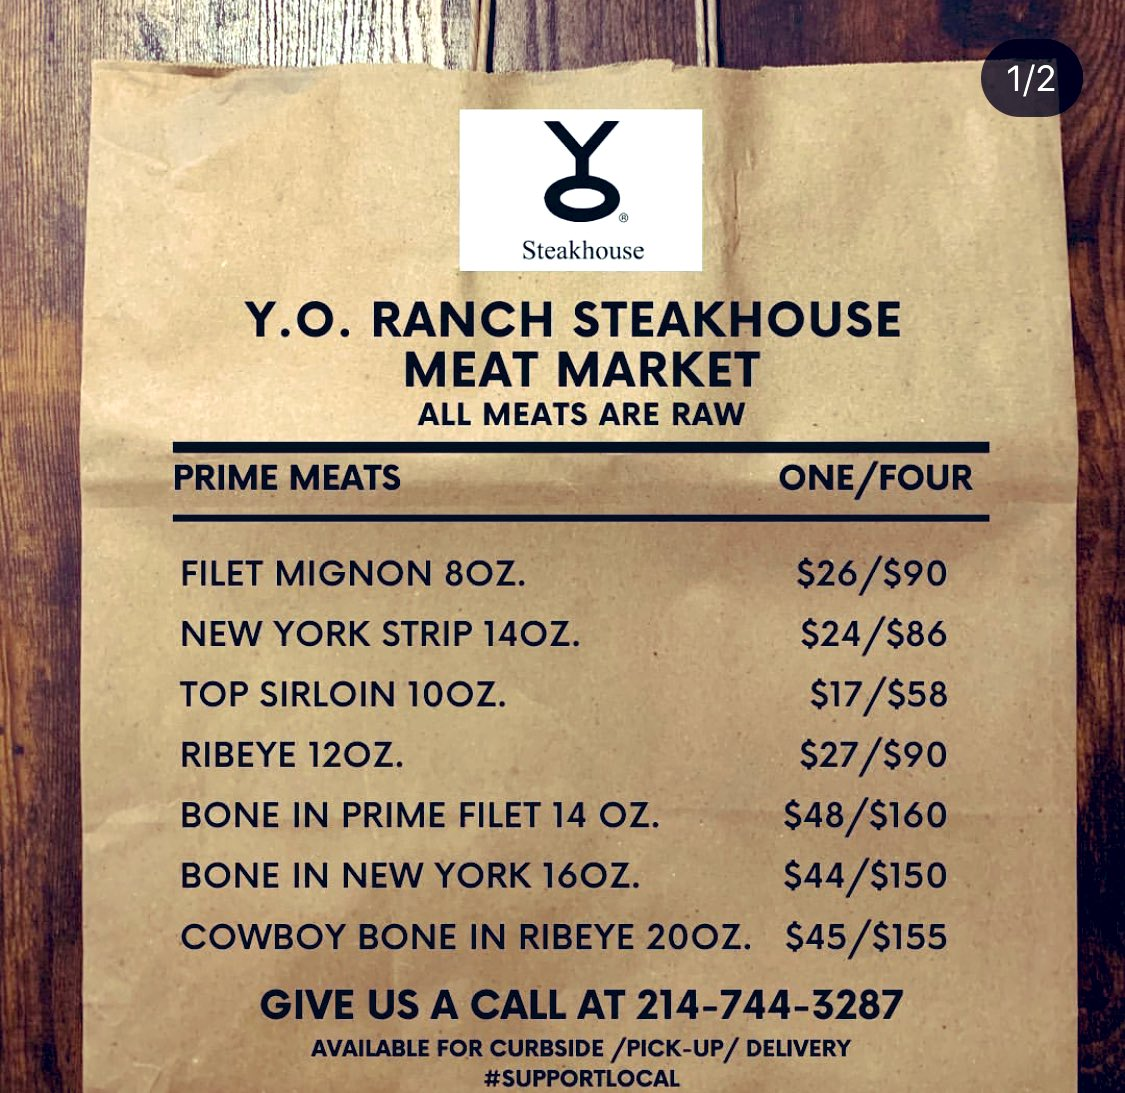 All you grillers! 🥩I see ya on your patios and rooftops. It took #QuarantineLife for me to finally meet my neighbor. 👋 @YORanchSteaks is delivering meat and major wine specials. 214-744-3287  #supportsmallbusiness #StayAtHomeAndStaySafe